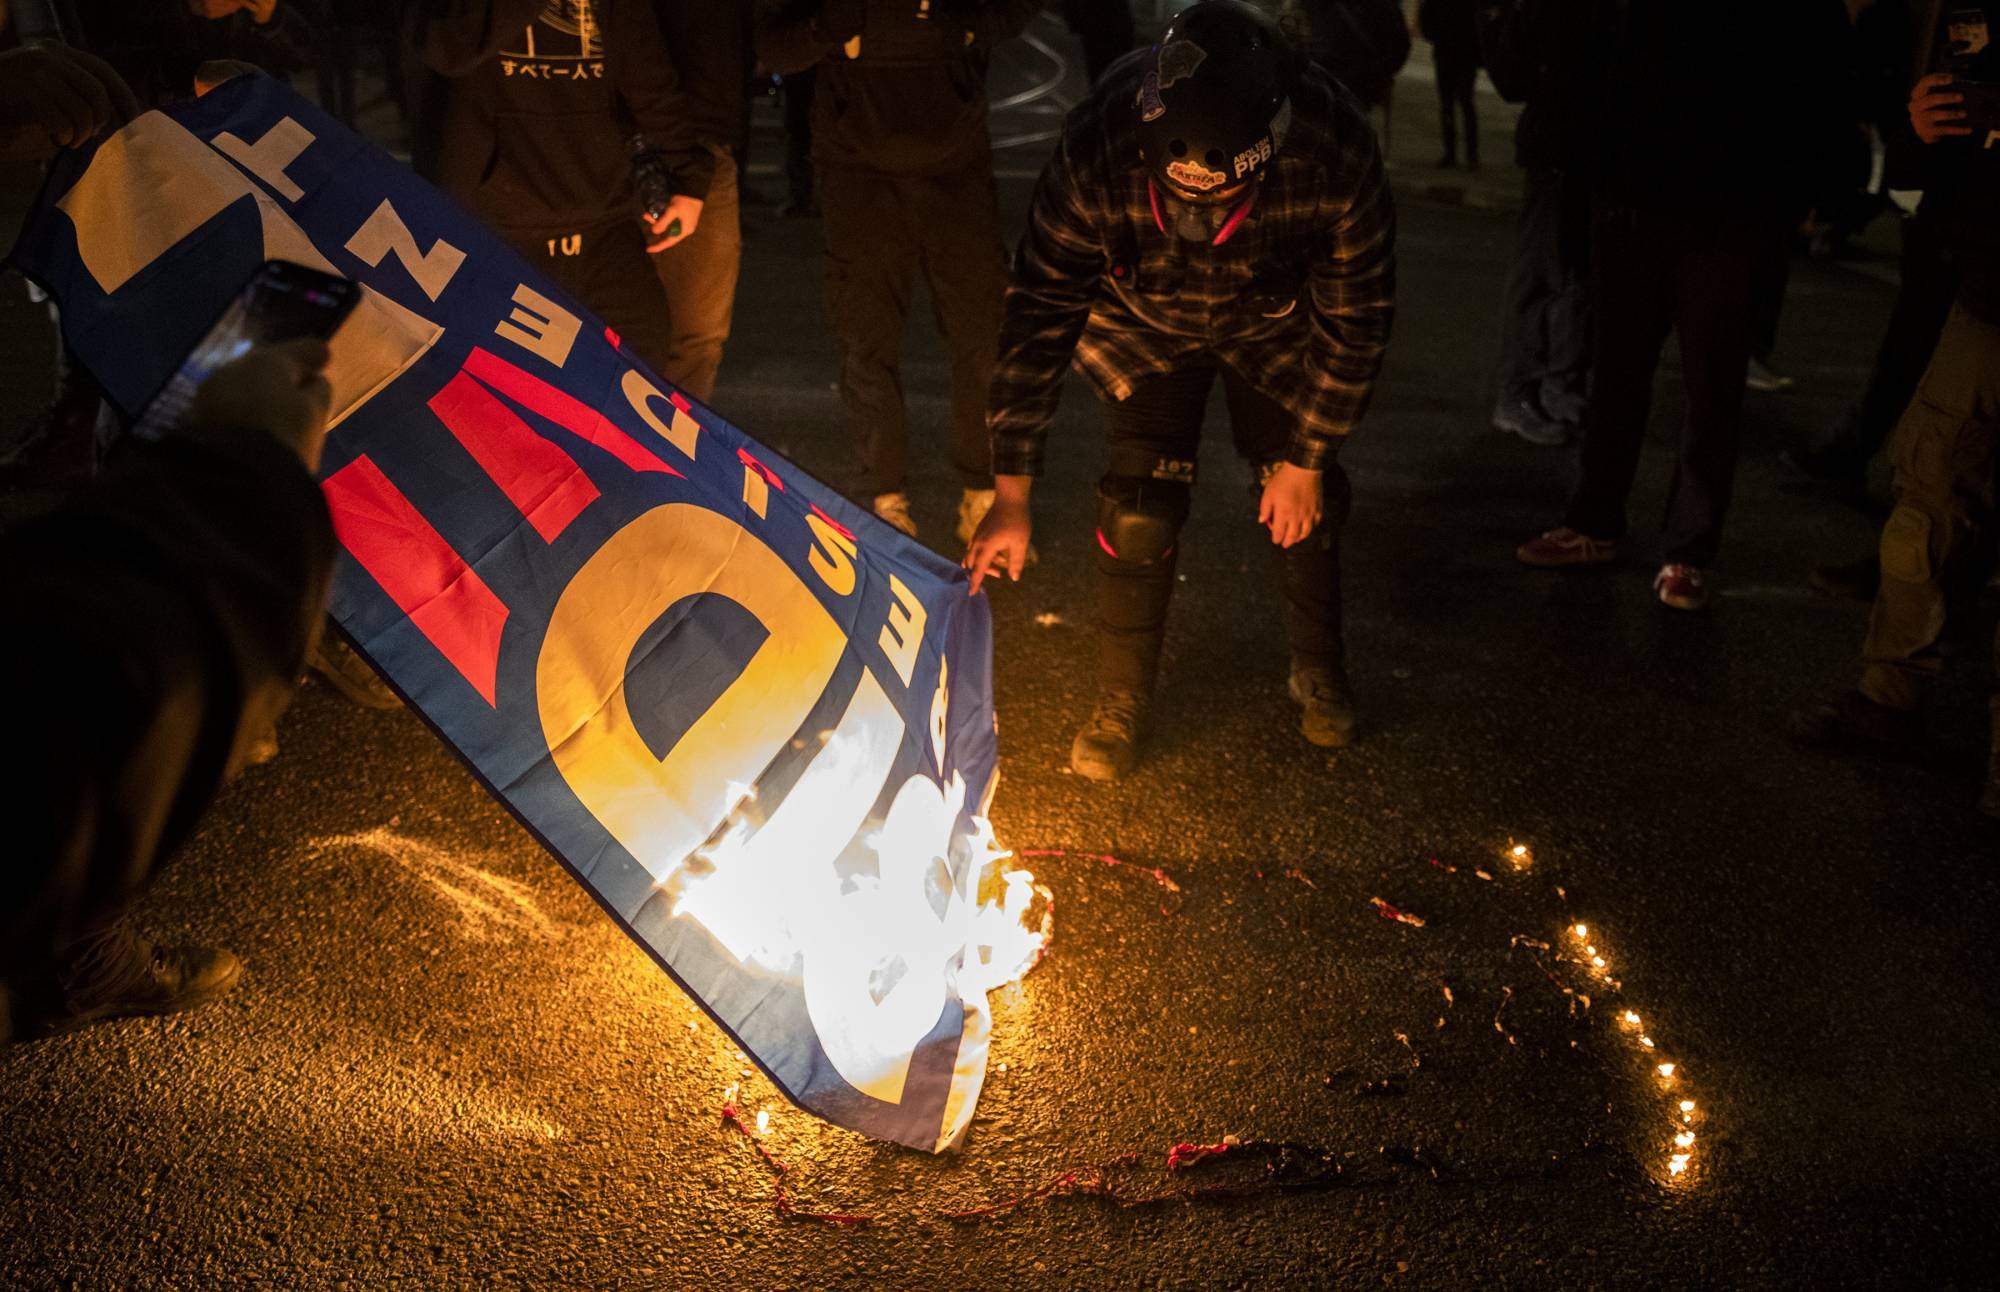 Protesters burn a Biden campaign flag in Portland, Oregon, after the inauguration of U.S. President Joe Biden, on Wednesday. | ALISHA JUCEVIC / THE NEW YORK TIMES